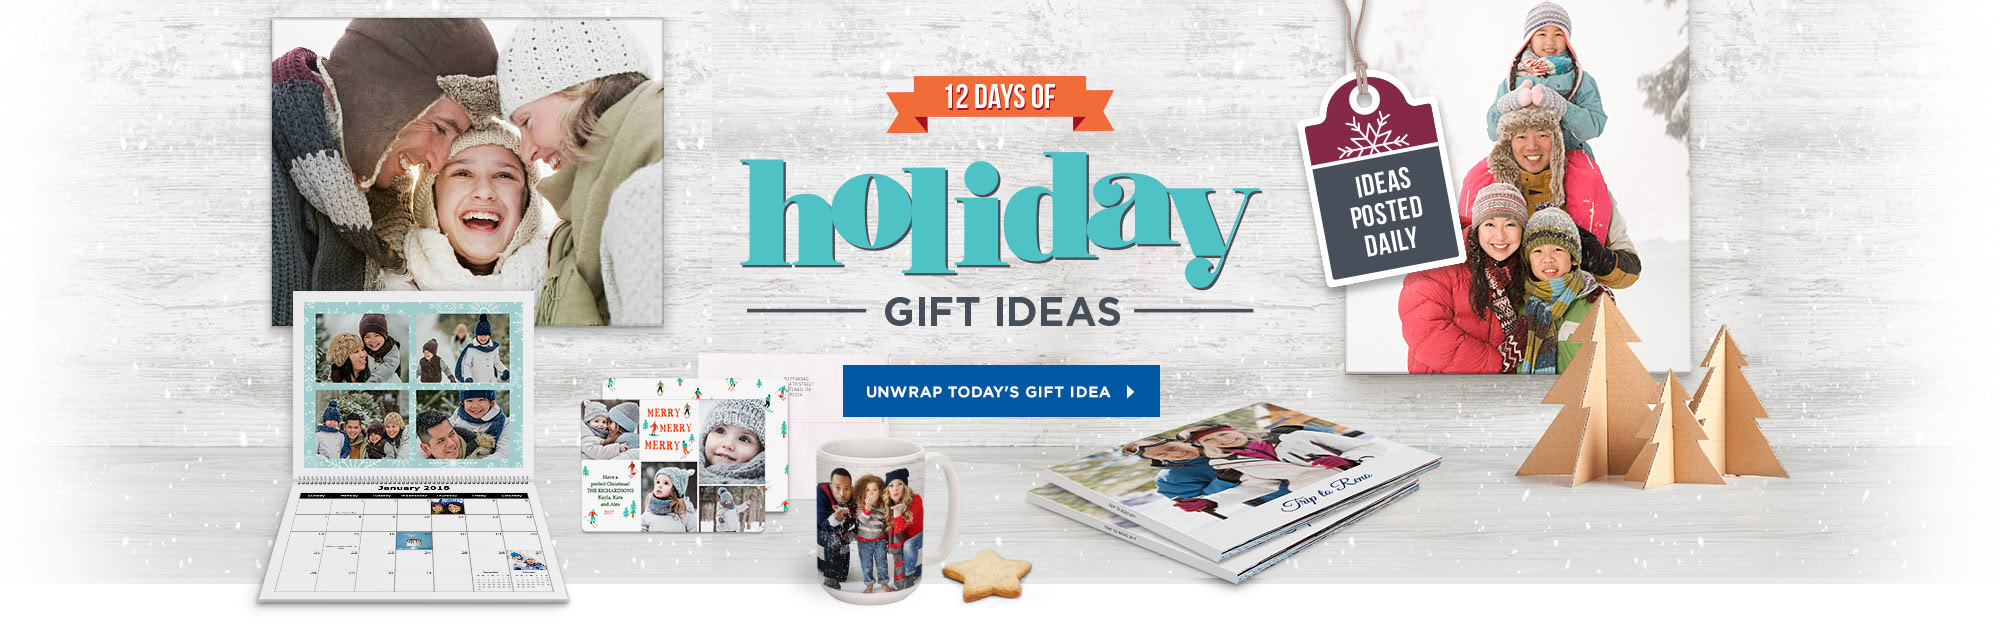 12 Days of Holidays Gift Ideas